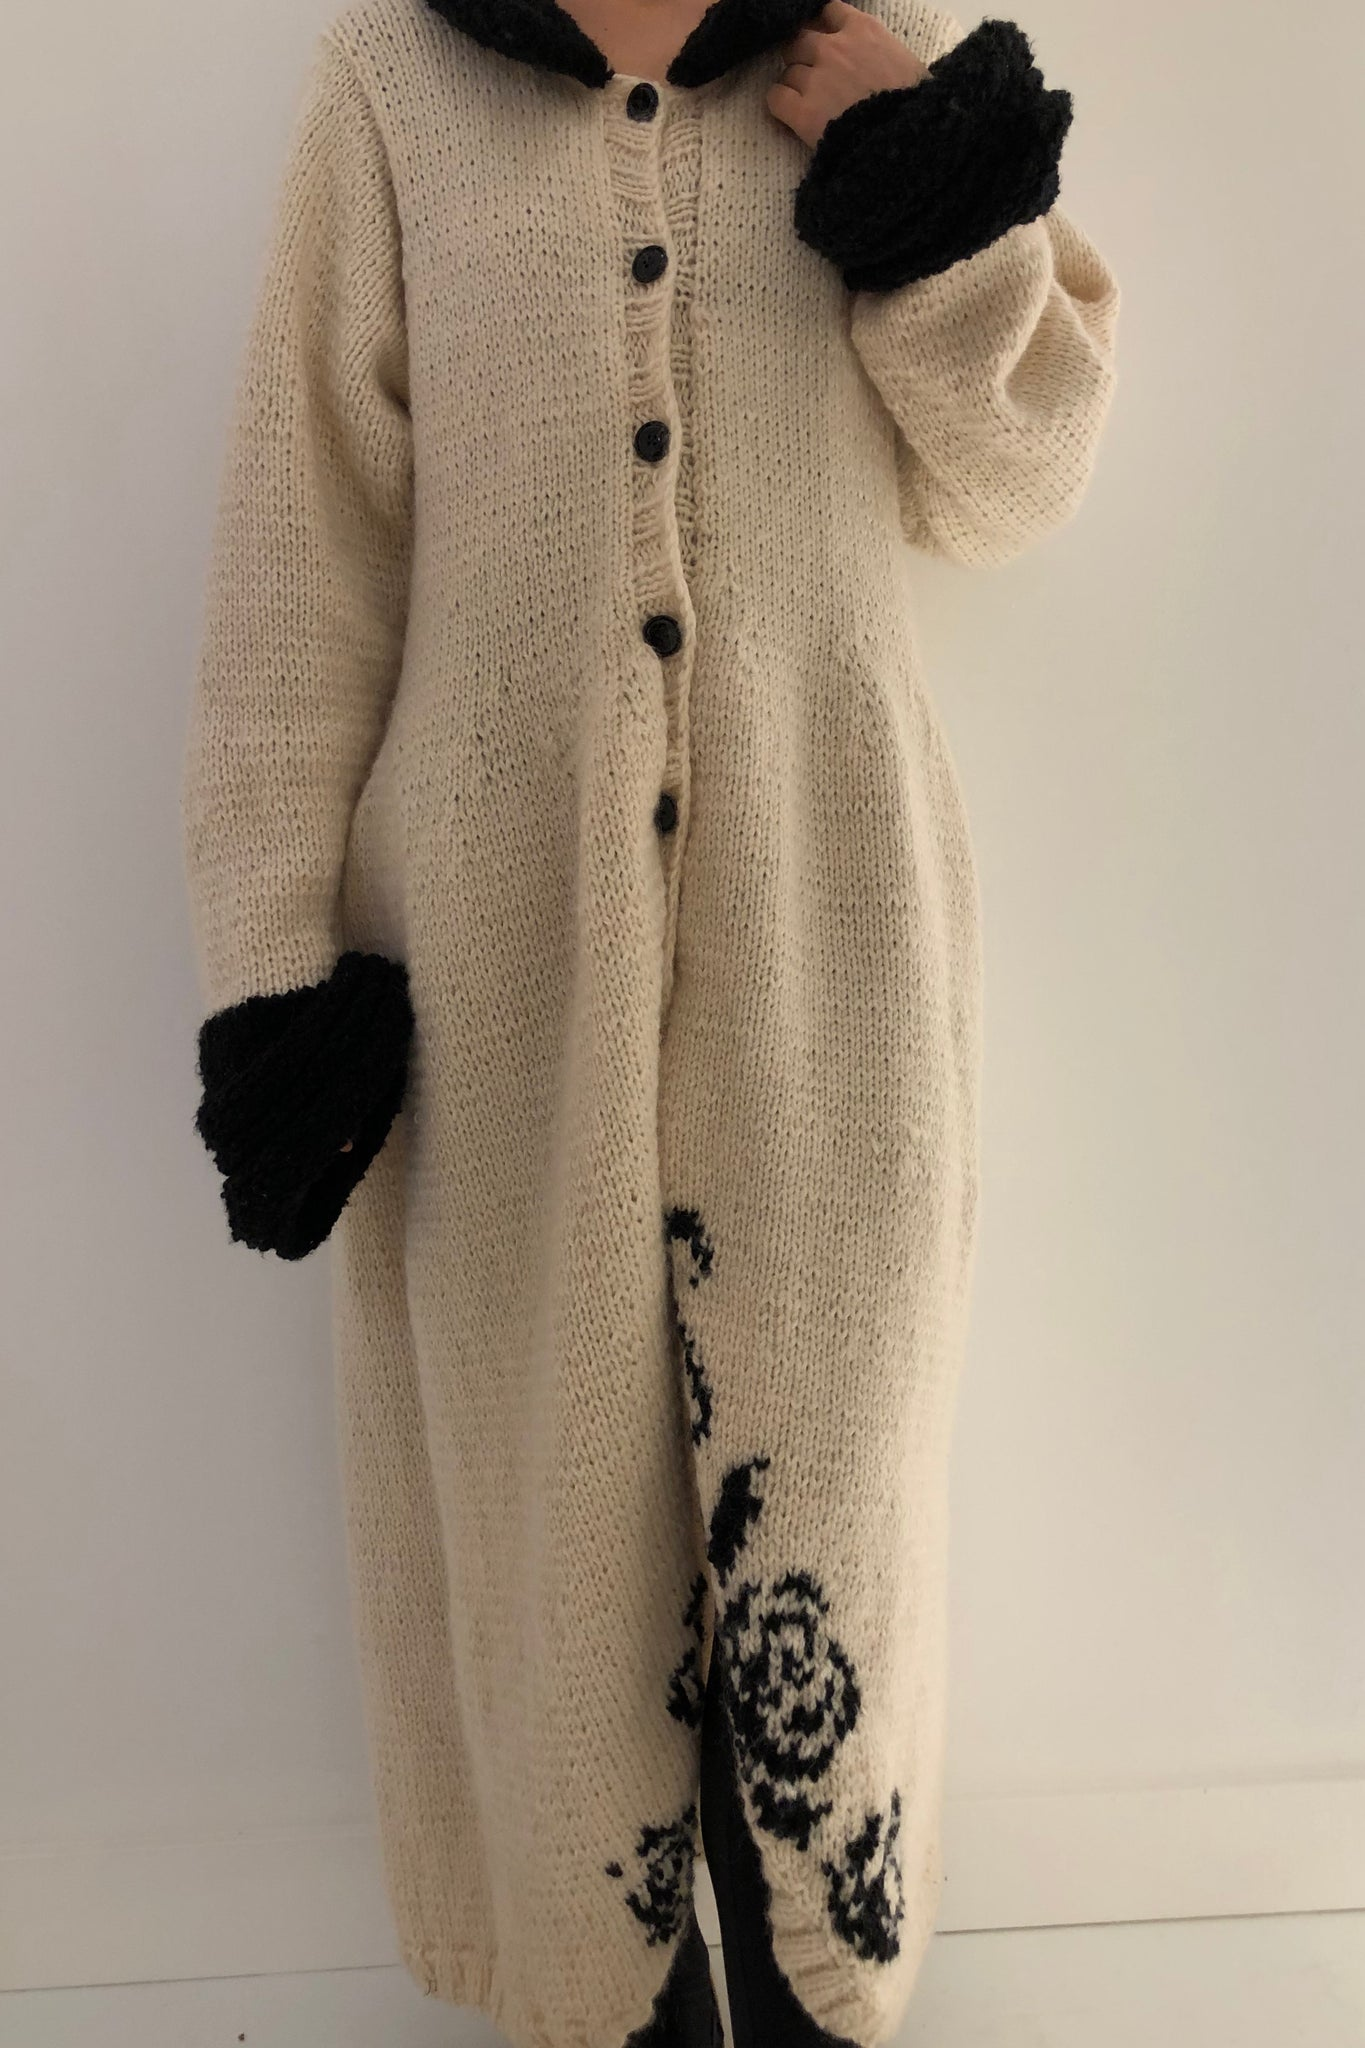 Vintage Oversized Knitted Cardigan